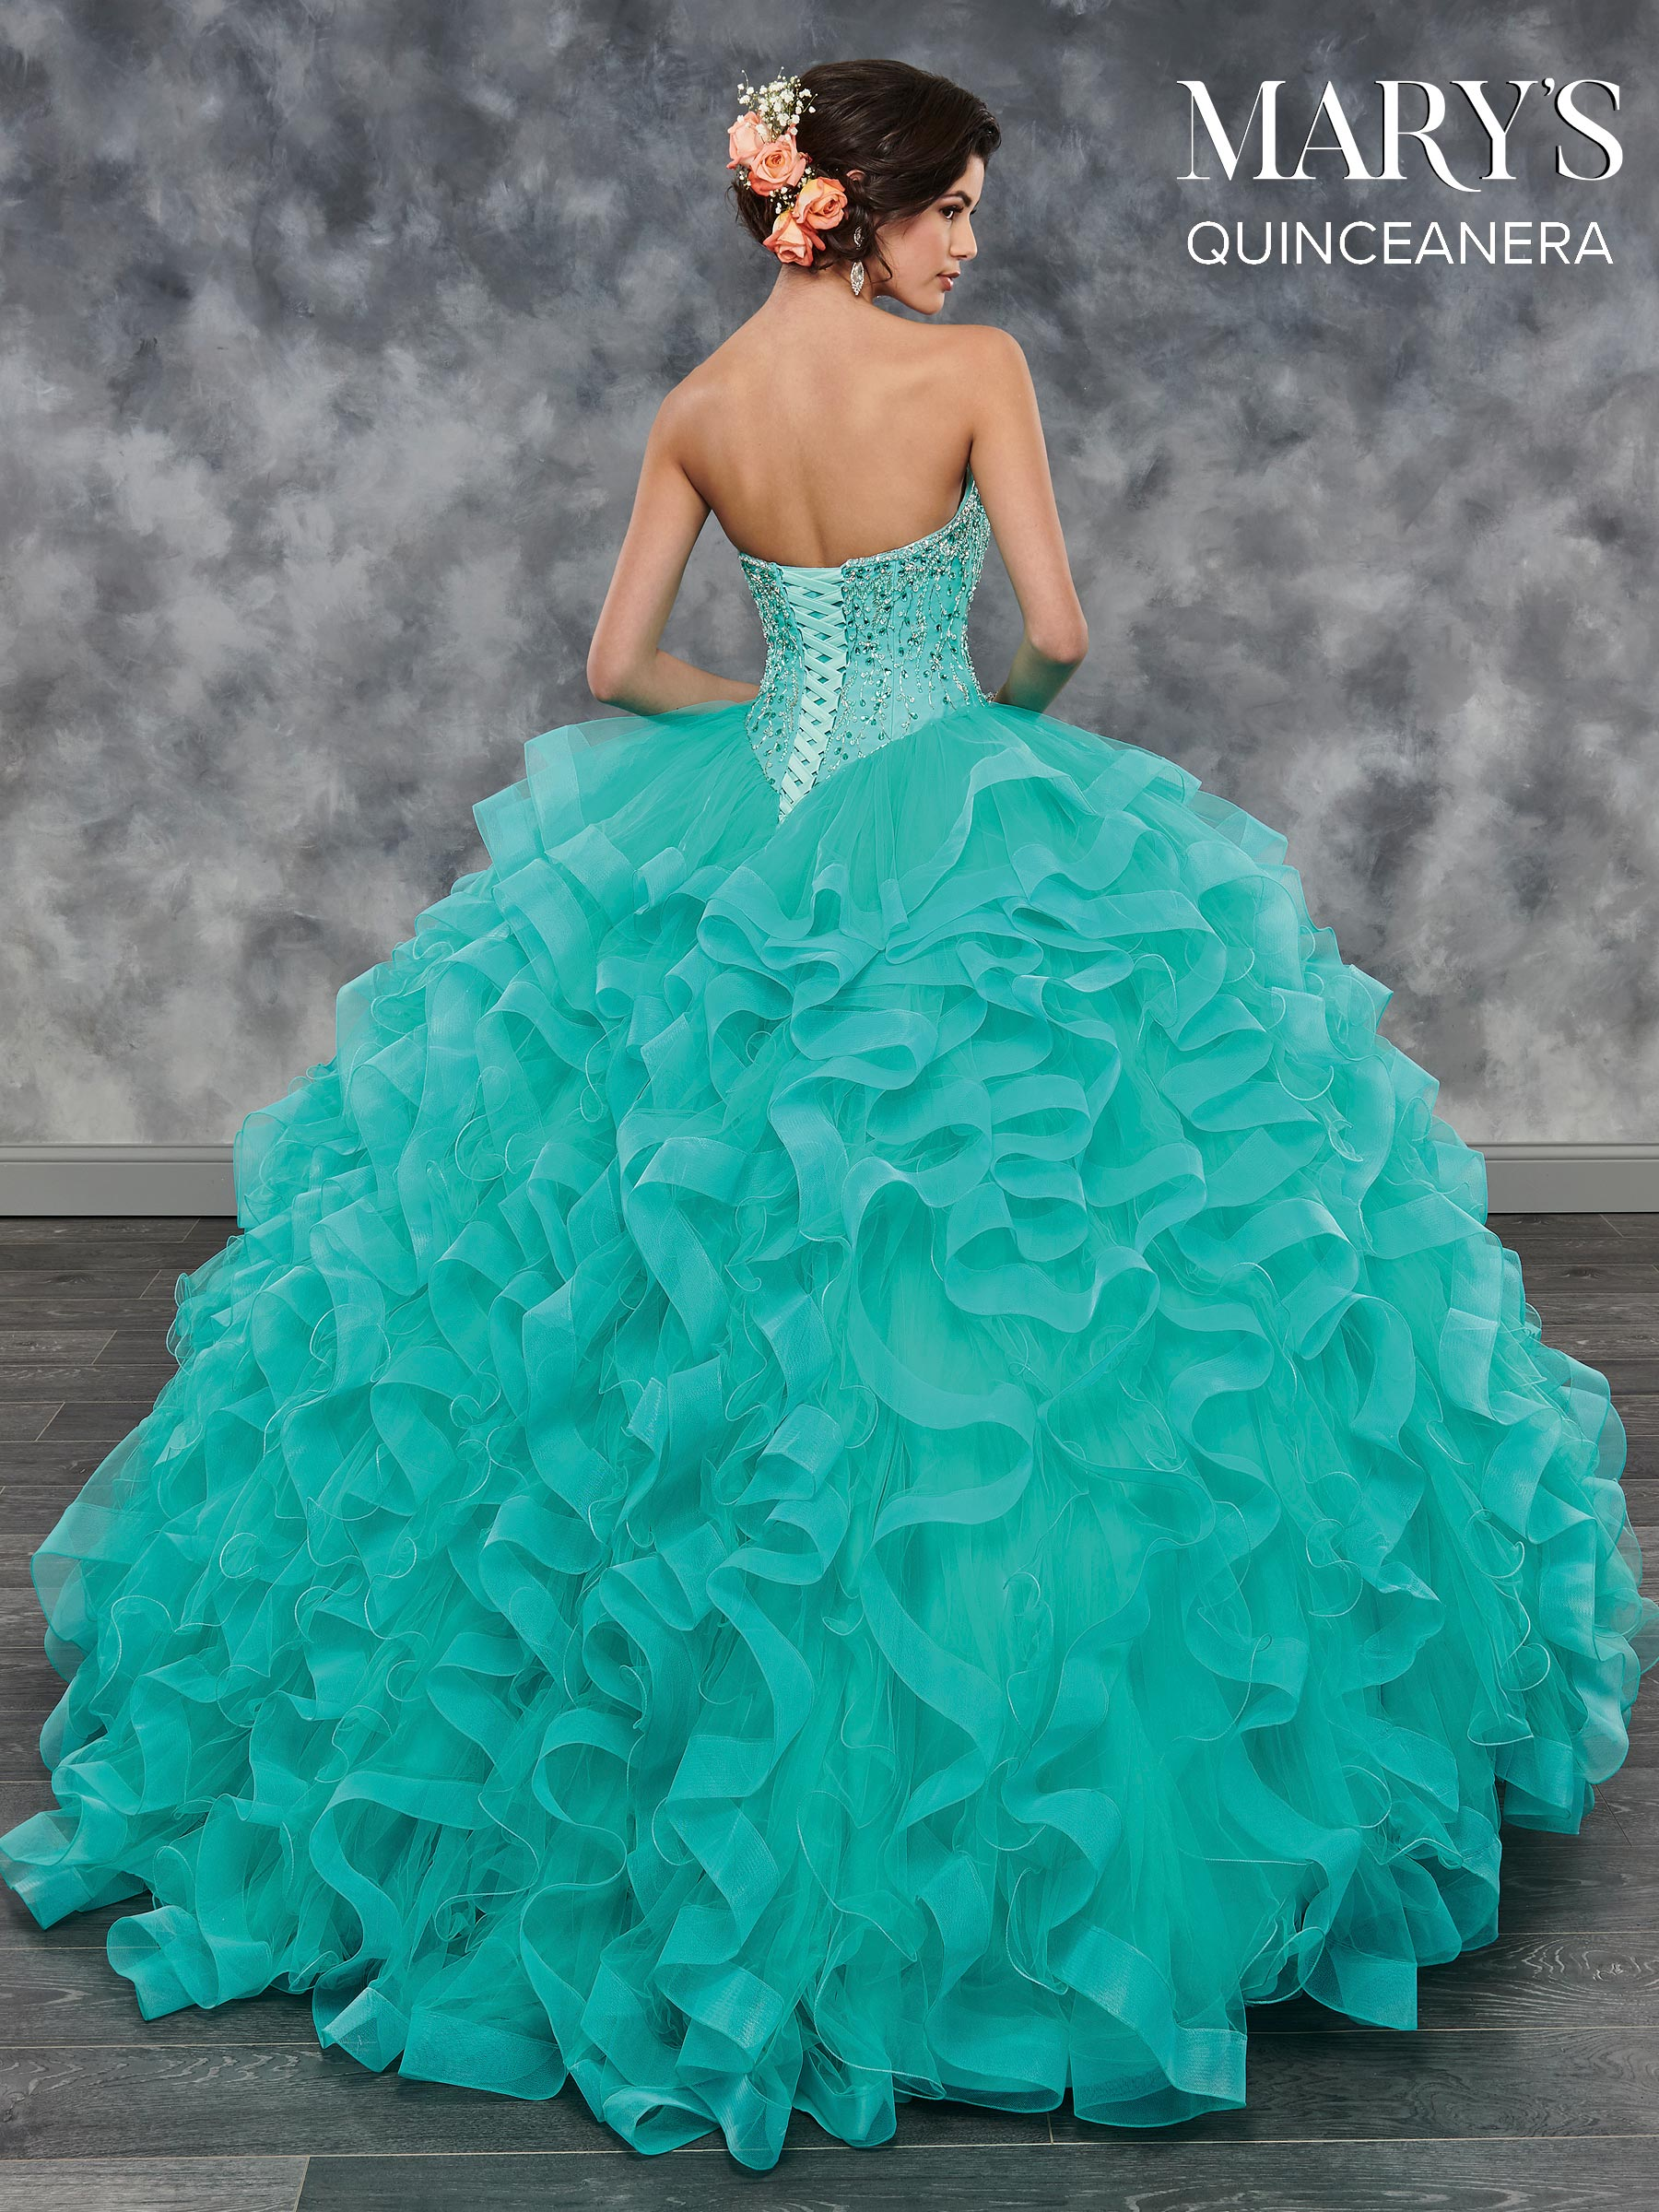 Marys Quinceanera Dresses | Mary's Quinceanera | Style - MQ2030